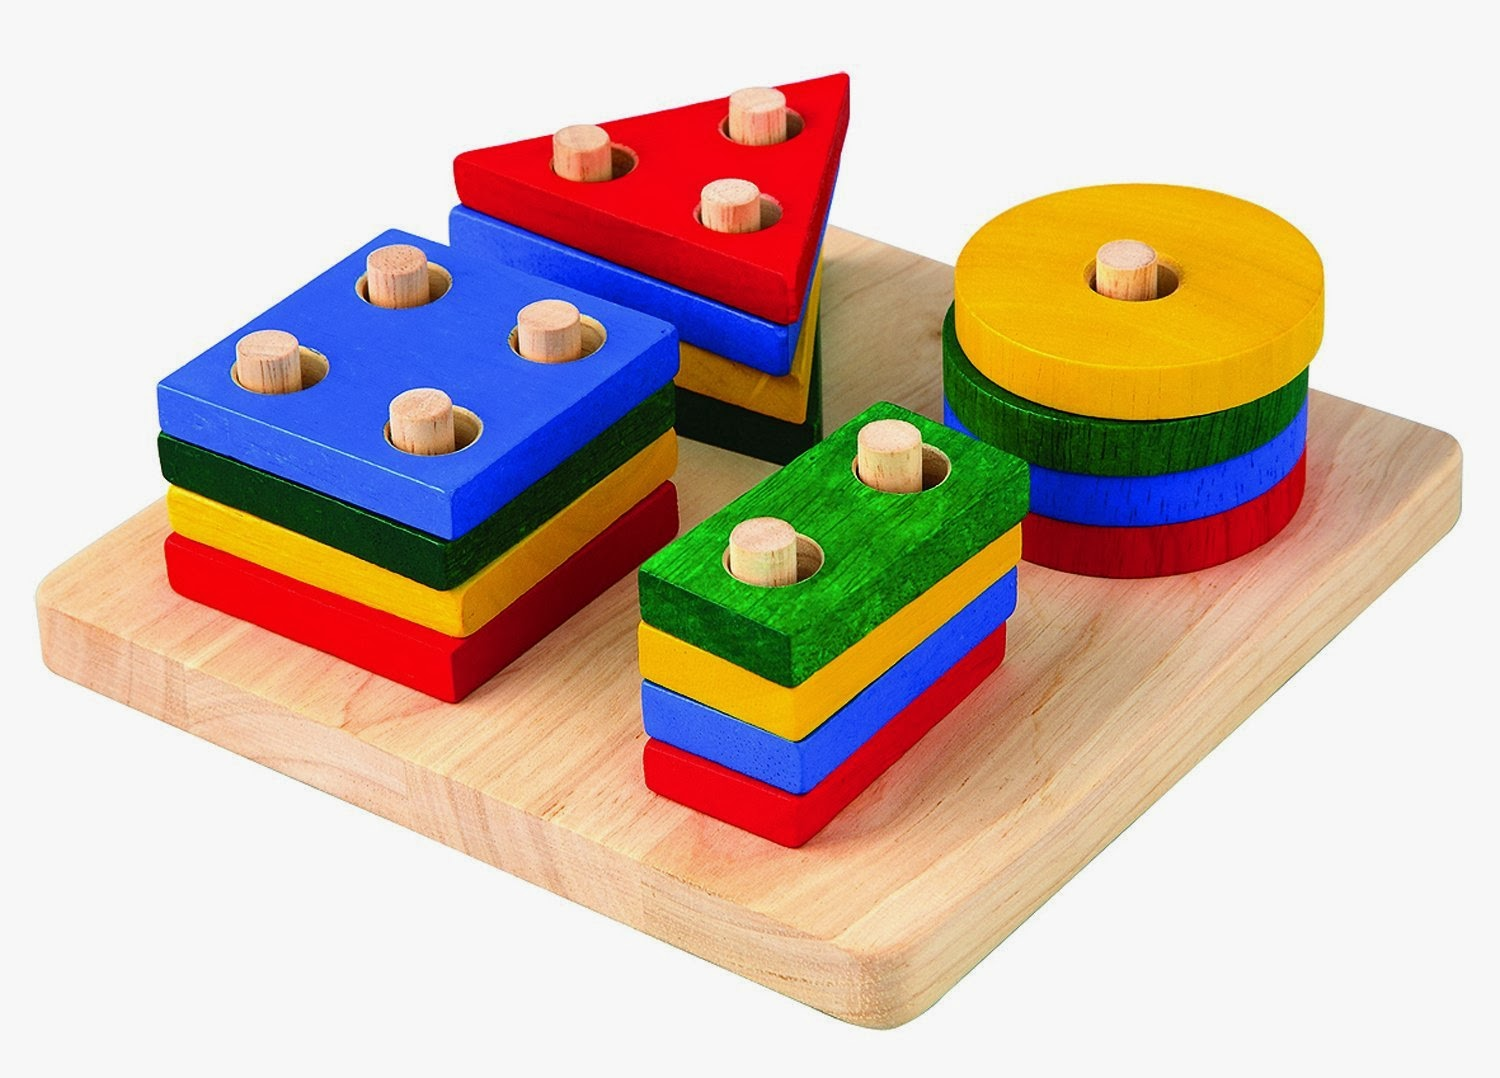 Educational Toys For Toddlers 2 4 : Merci qui montessori quels puzzles pour les